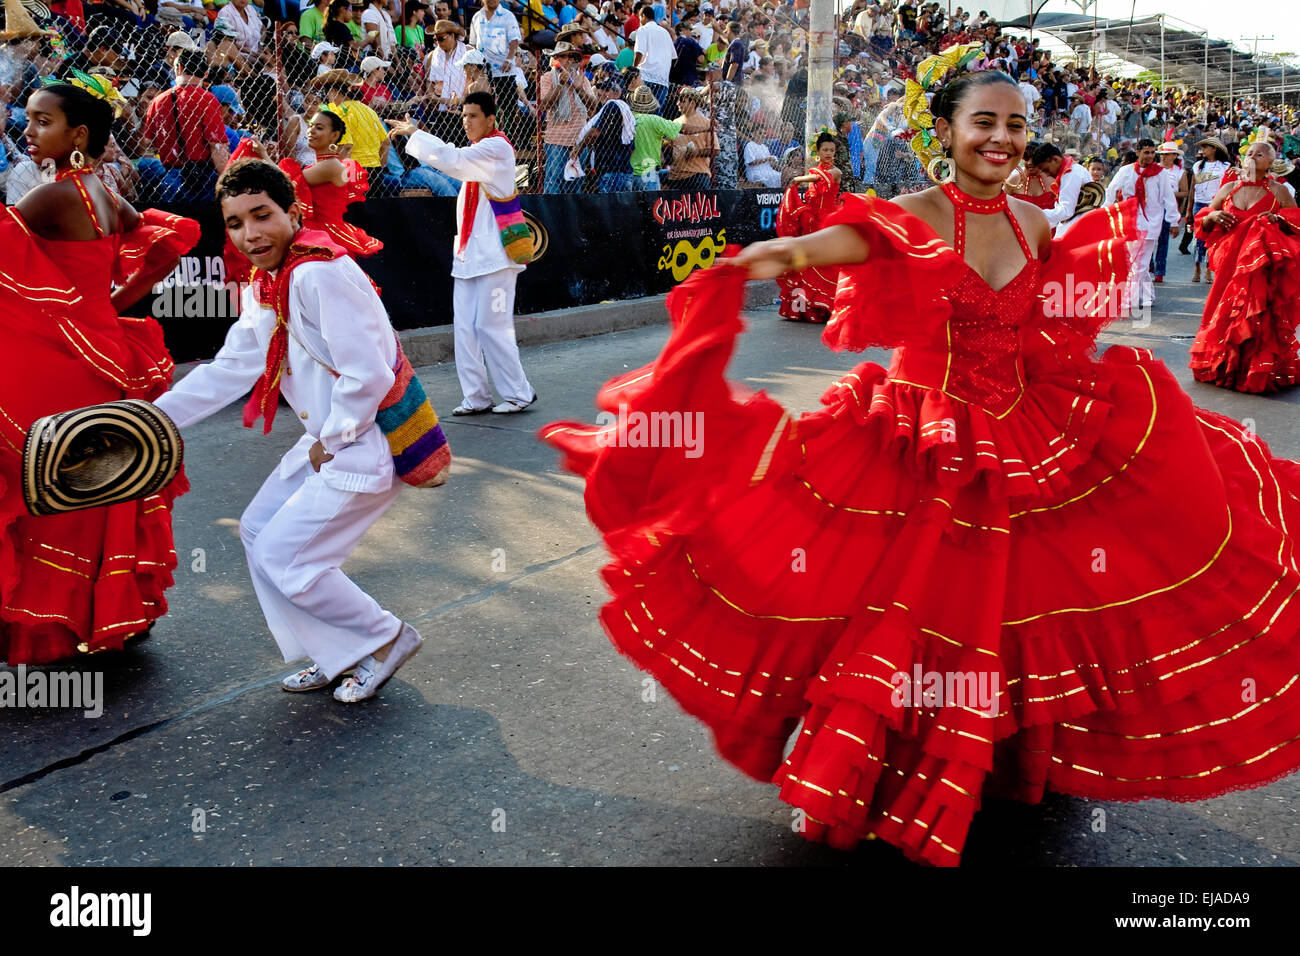 Colombian couple dance cumbia during the Carnival in Barranquilla, Colombia. - Stock Image